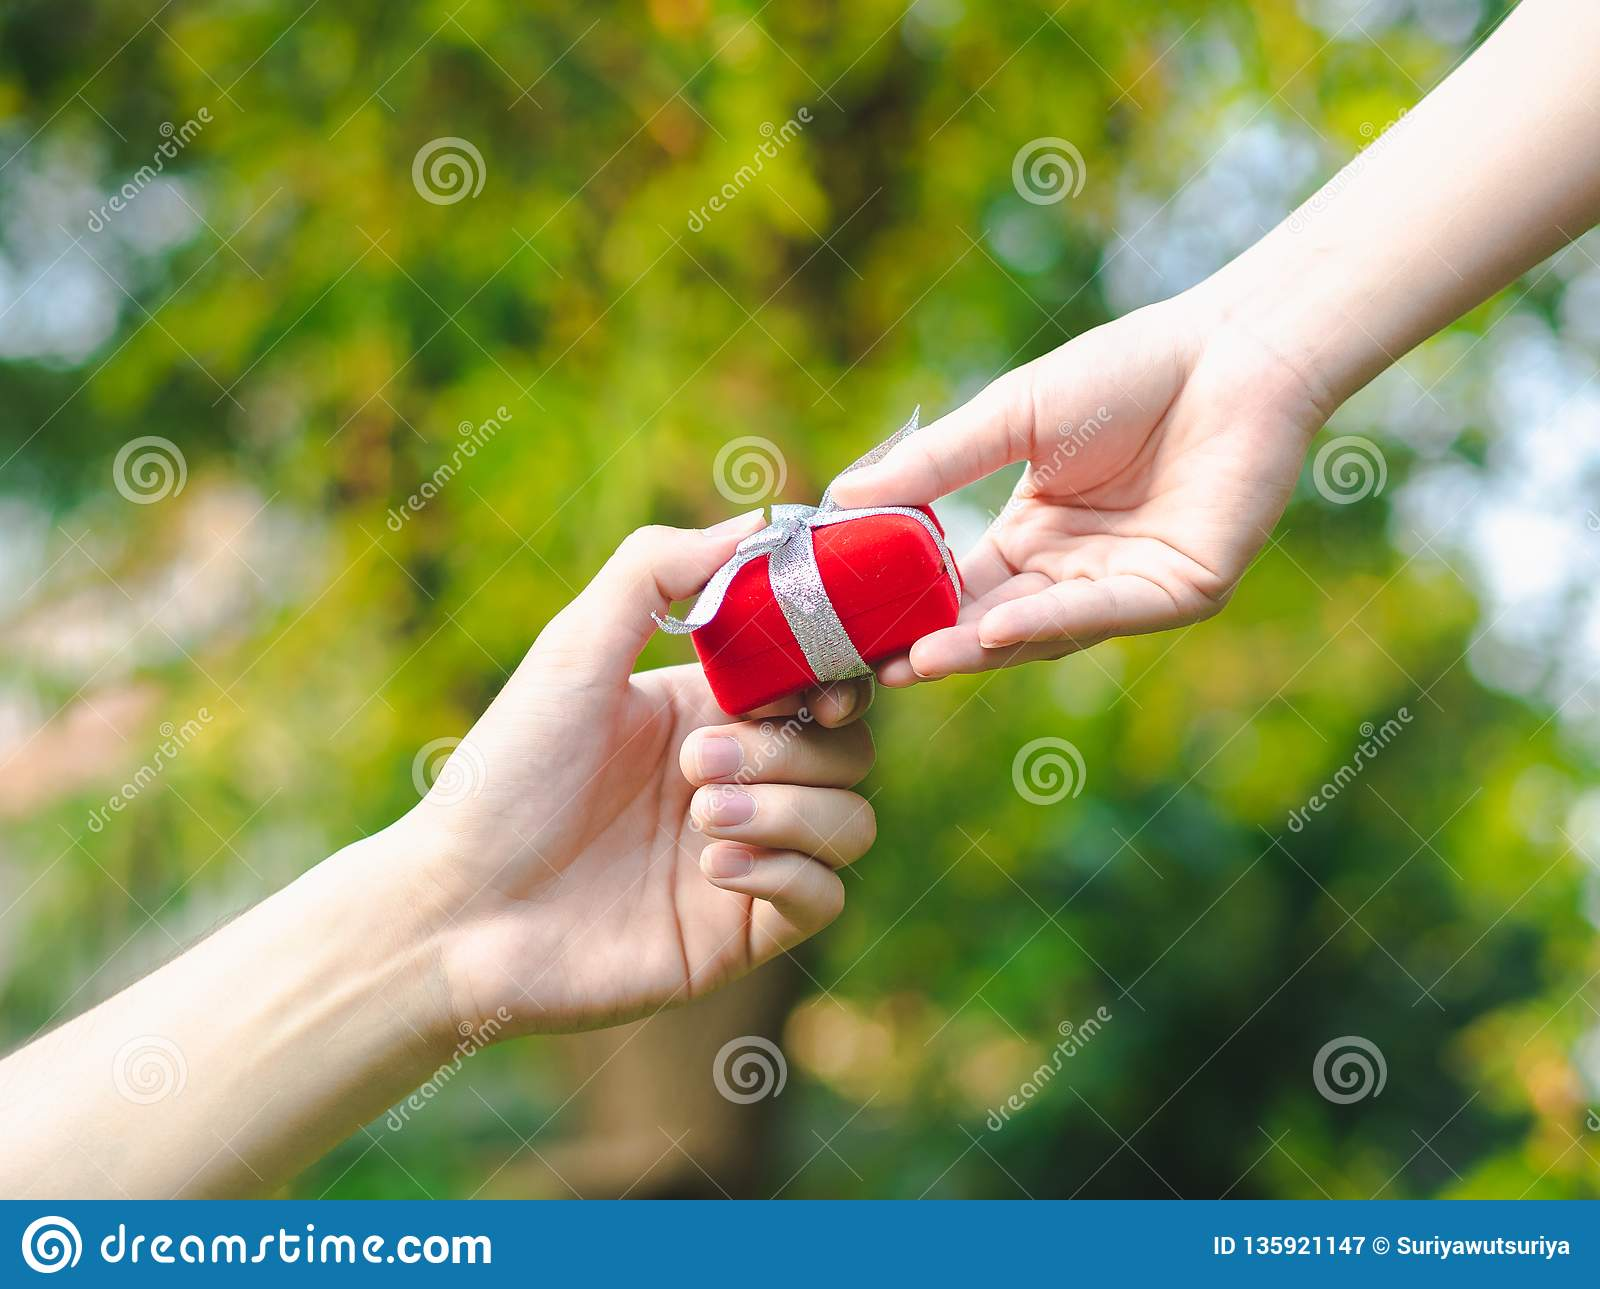 Man giving a red gift box to woman. Love, Valentine,Present Concept